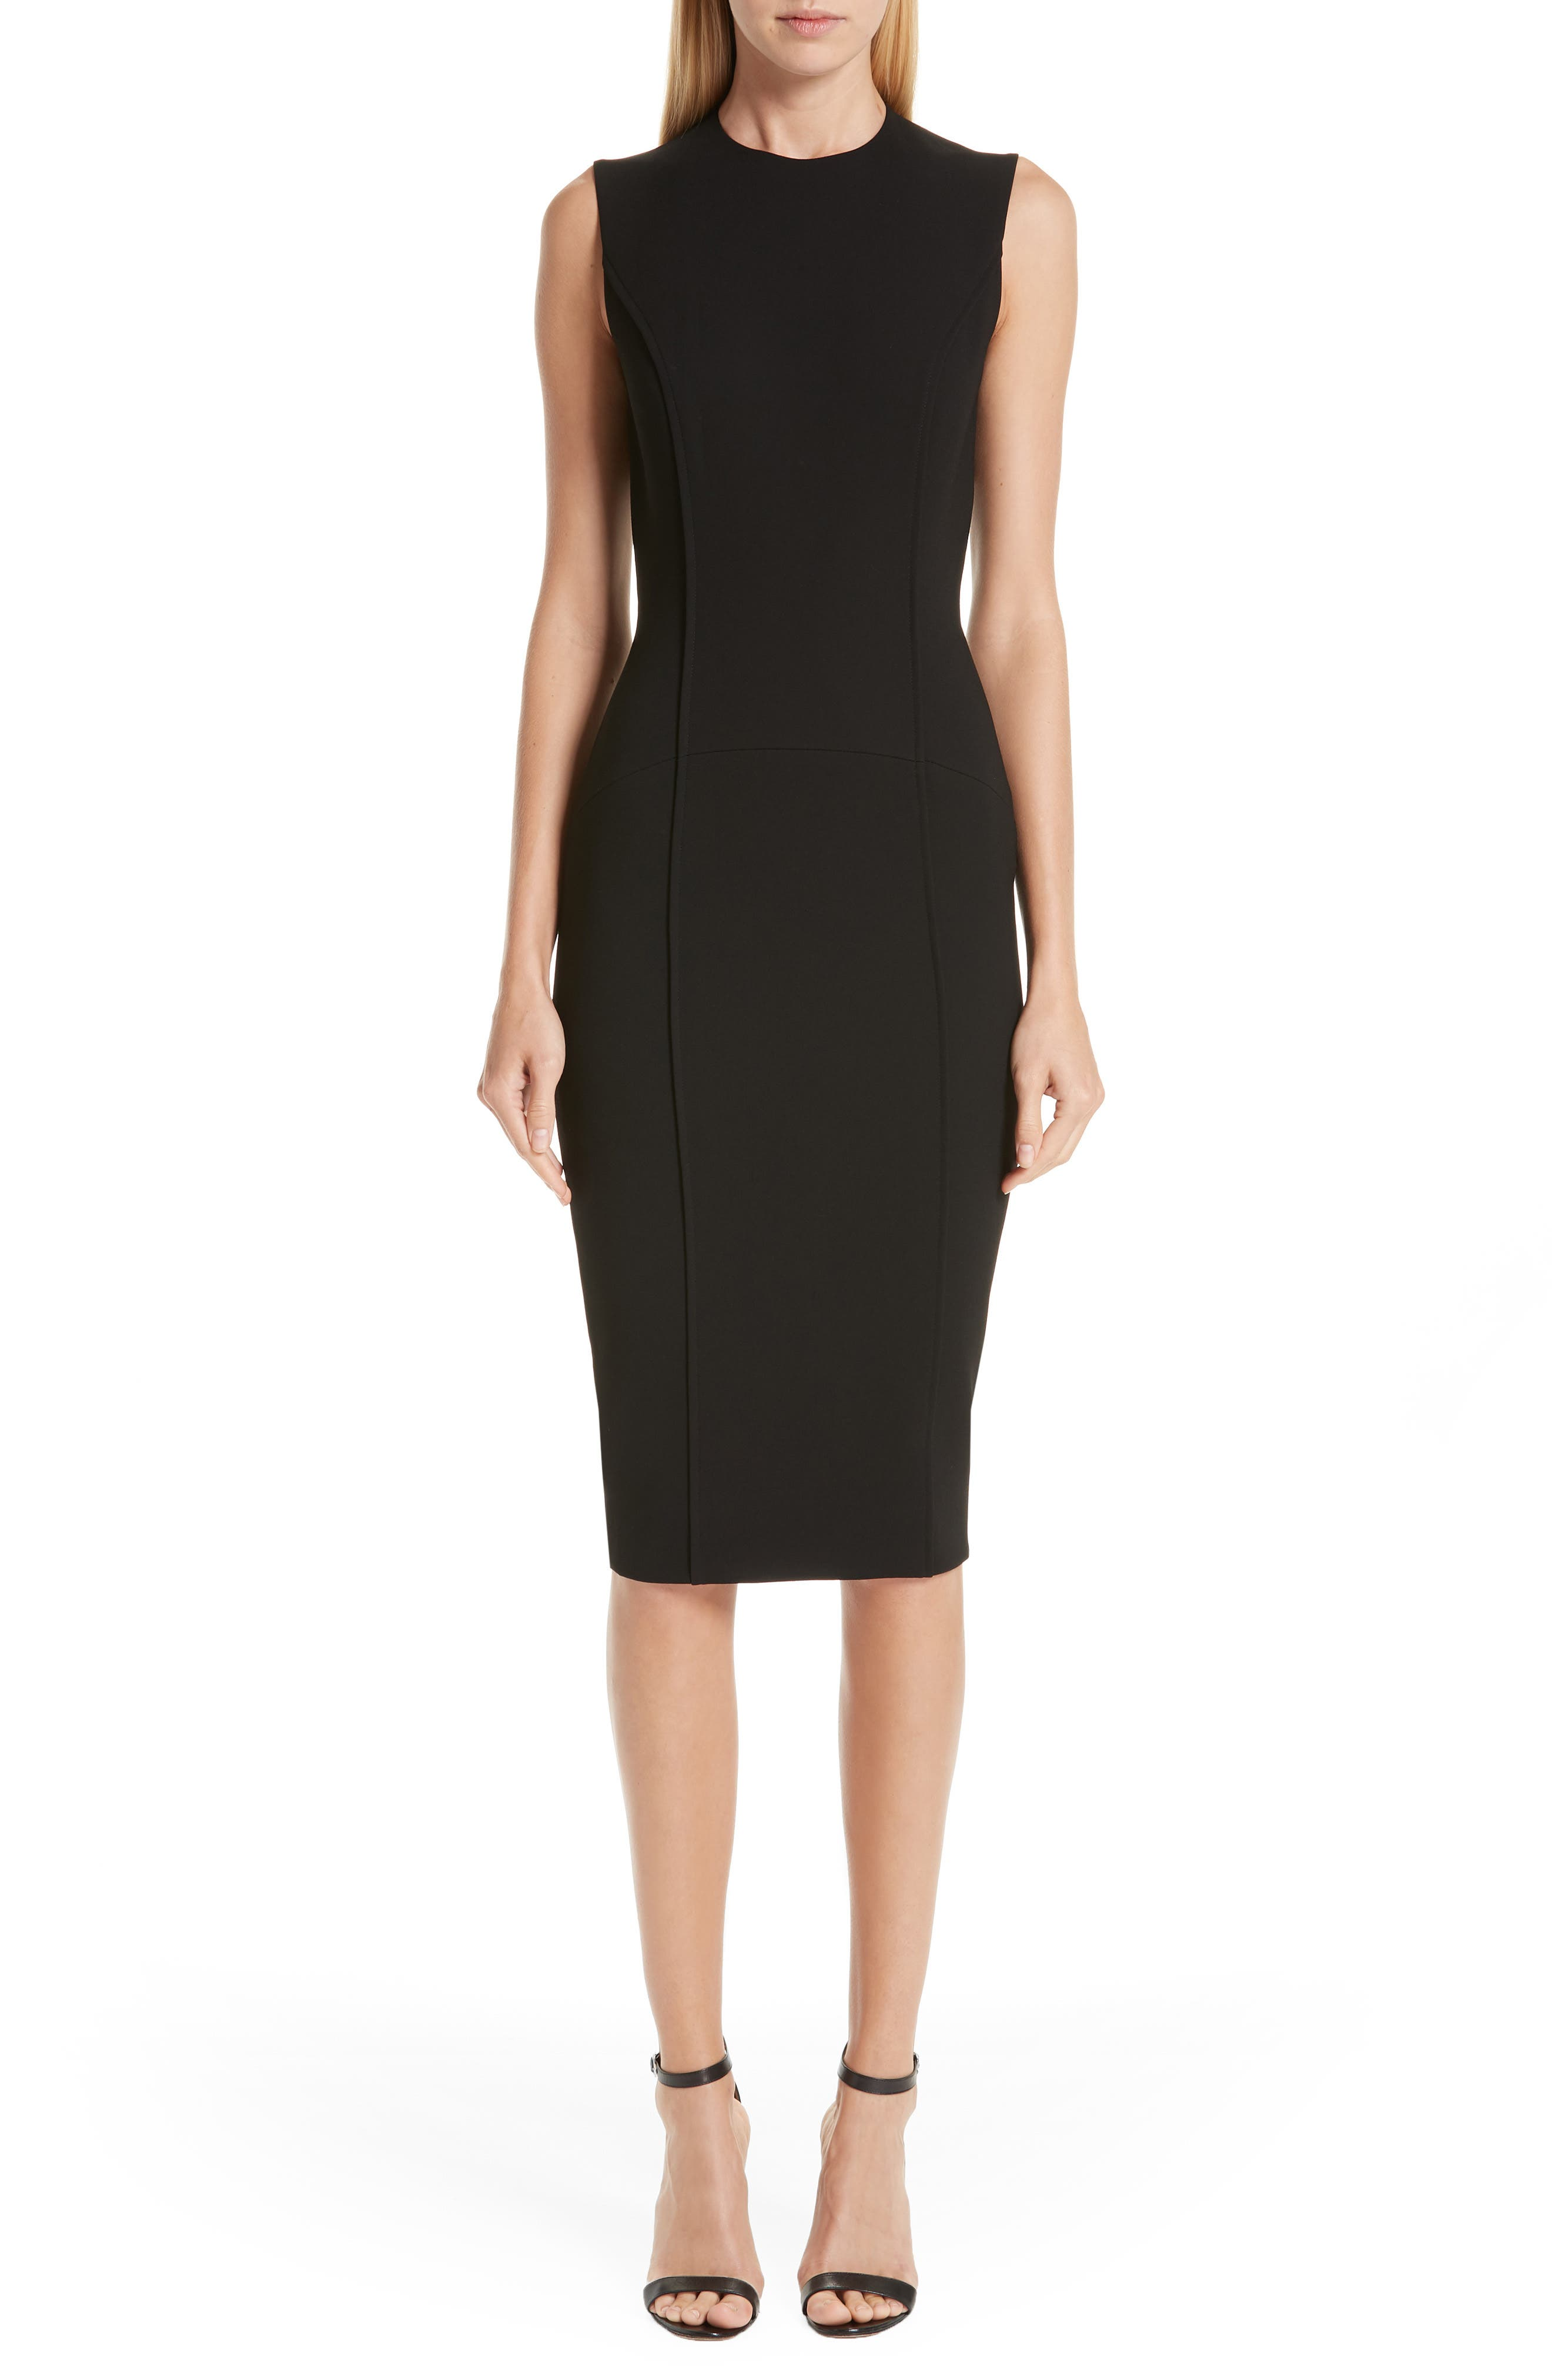 Victoria Beckham Back Zip Body-Con Dress, US / 6 UK - Black